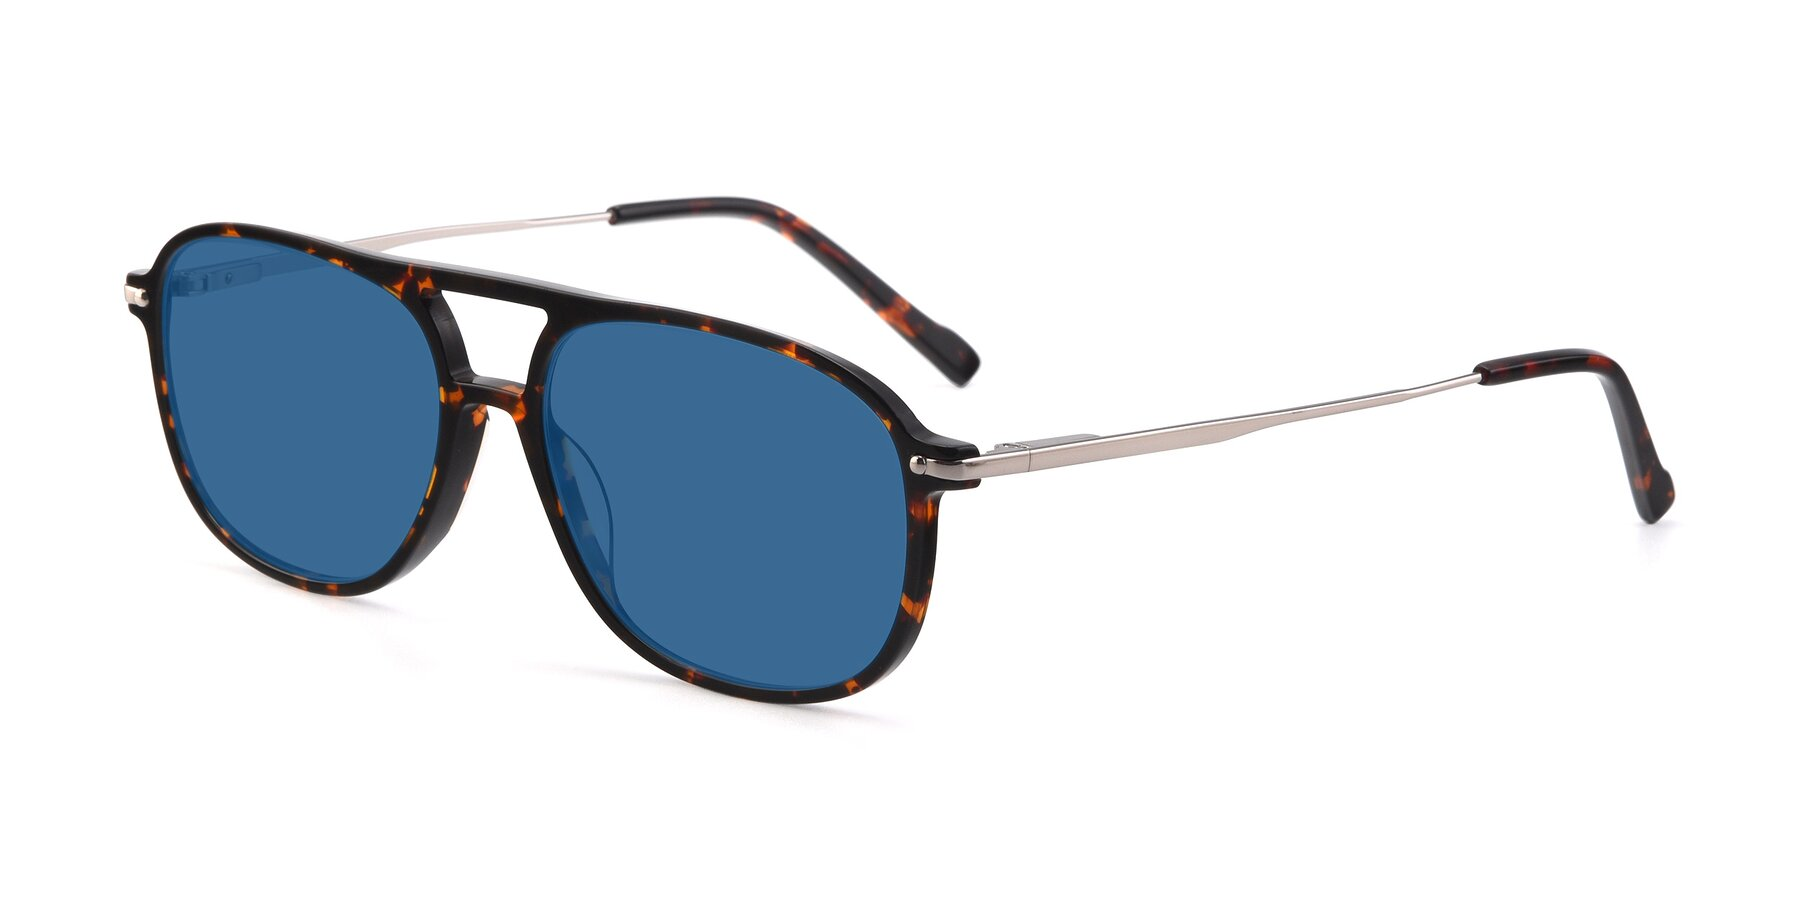 Angle of 17580 in Tortoise with Blue Tinted Lenses